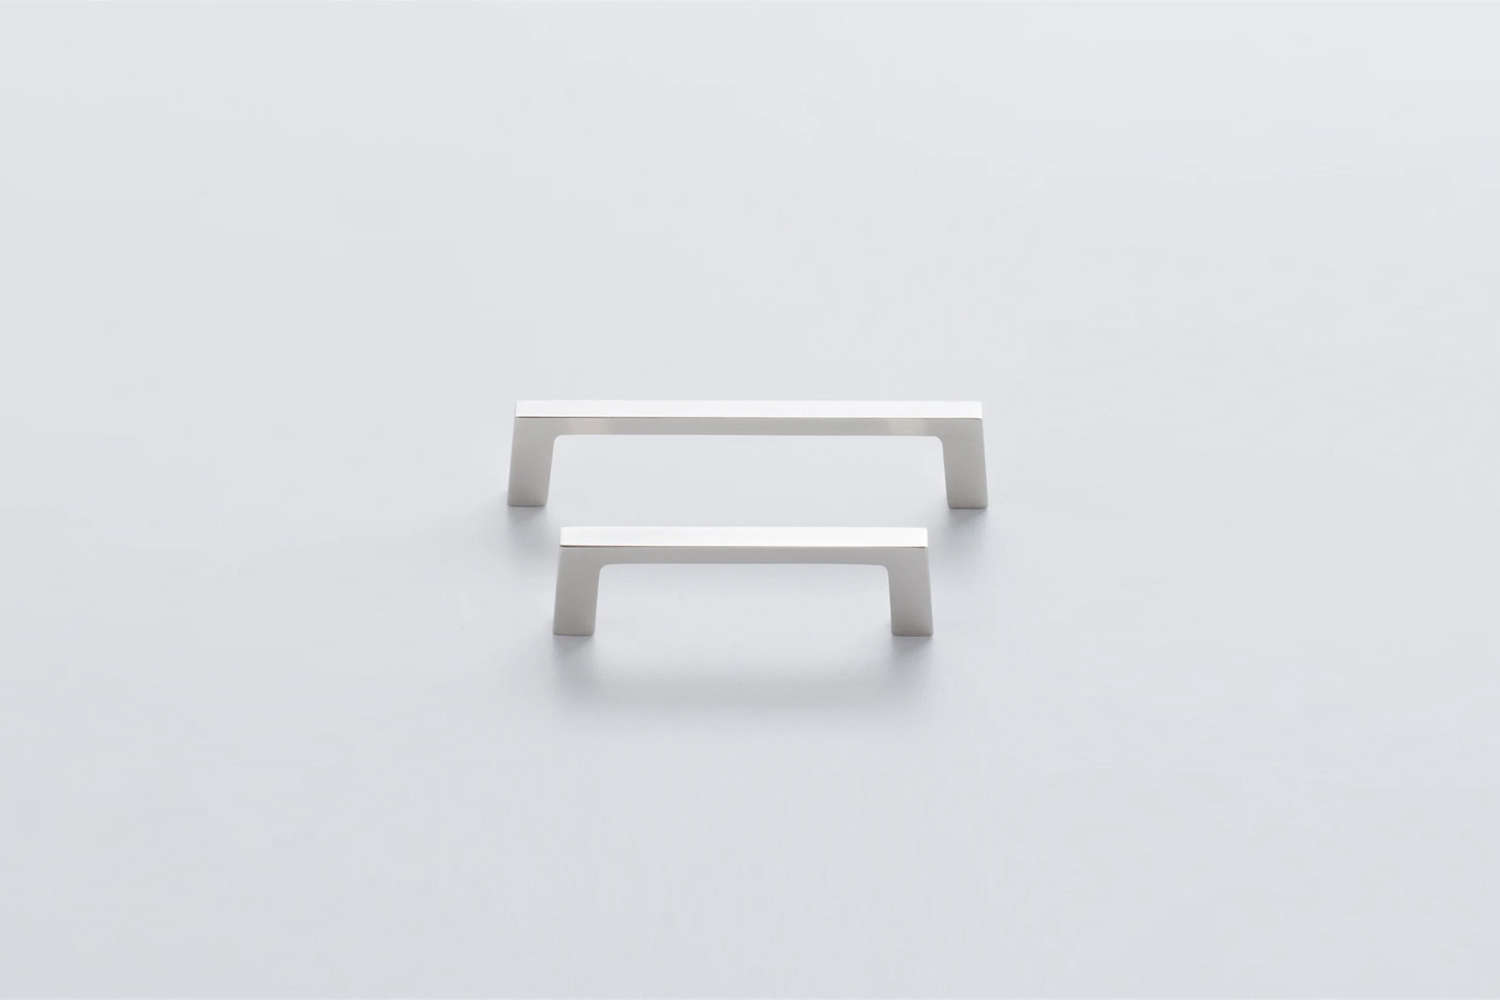 10 Easy Pieces Favorite Cabinet Pulls The Schoolhouse Greenwood Pull in Satin Nickel is \$\20 each.